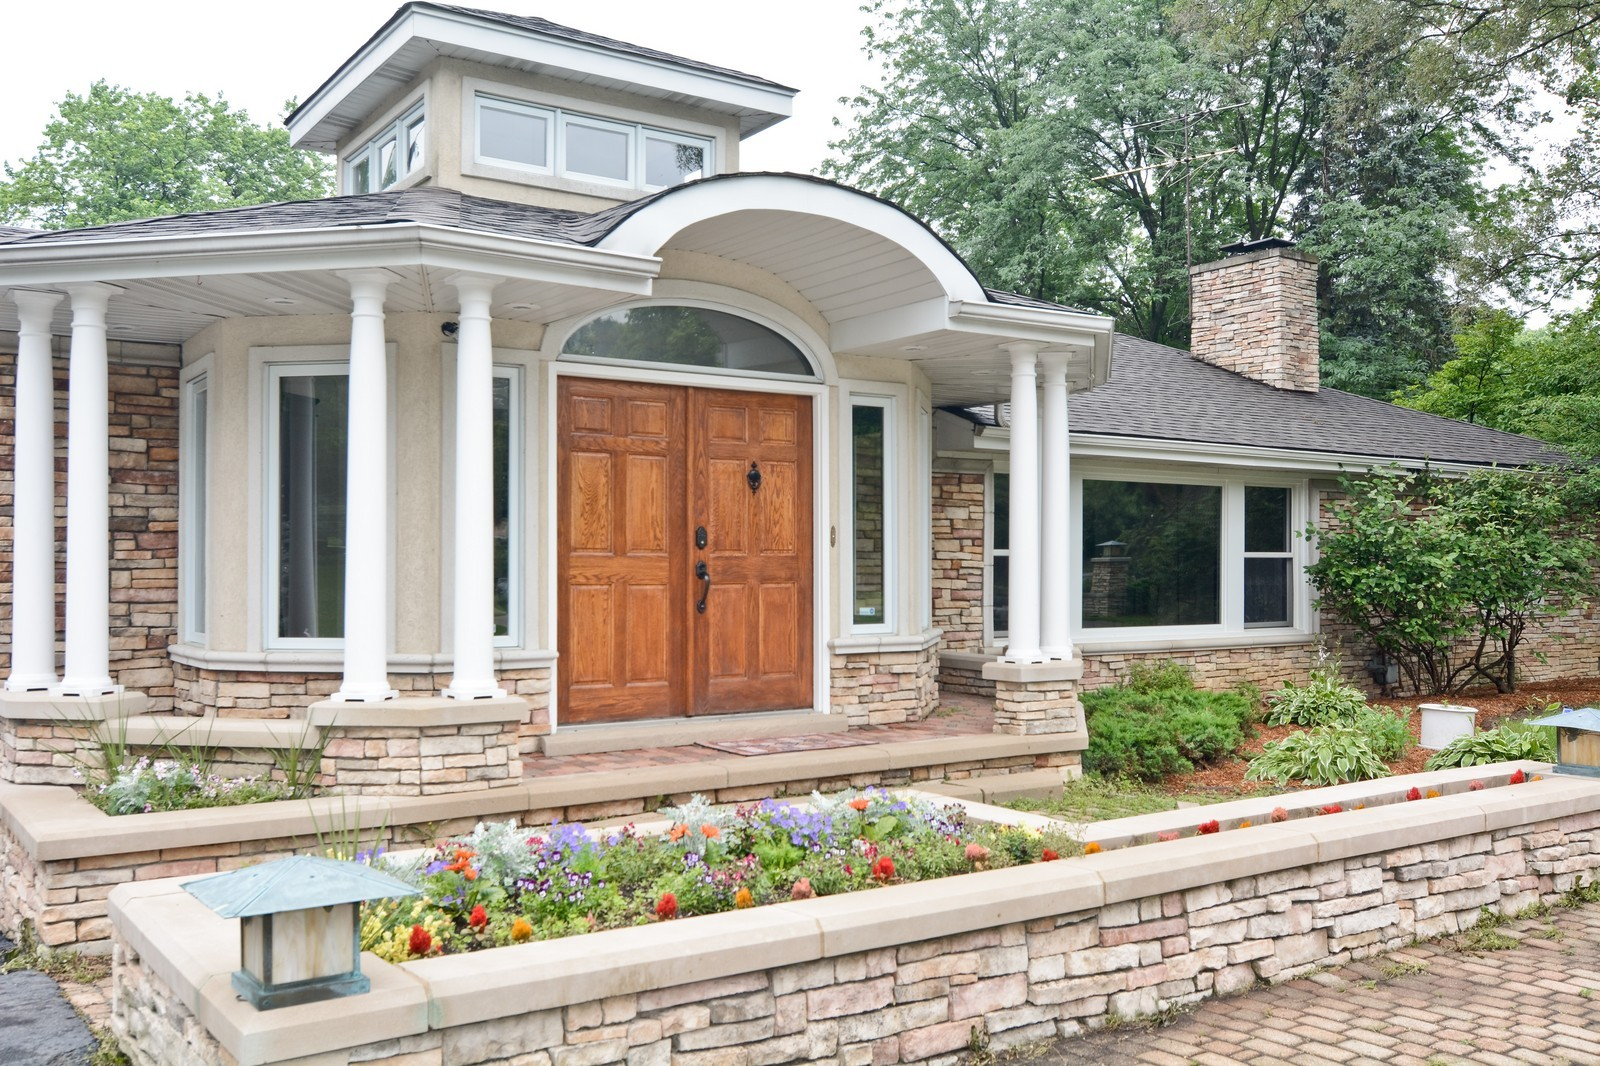 Real Estate Photography - 2S611 Arboritumn, Glen Ellyn, IL, 60137 - Entryway